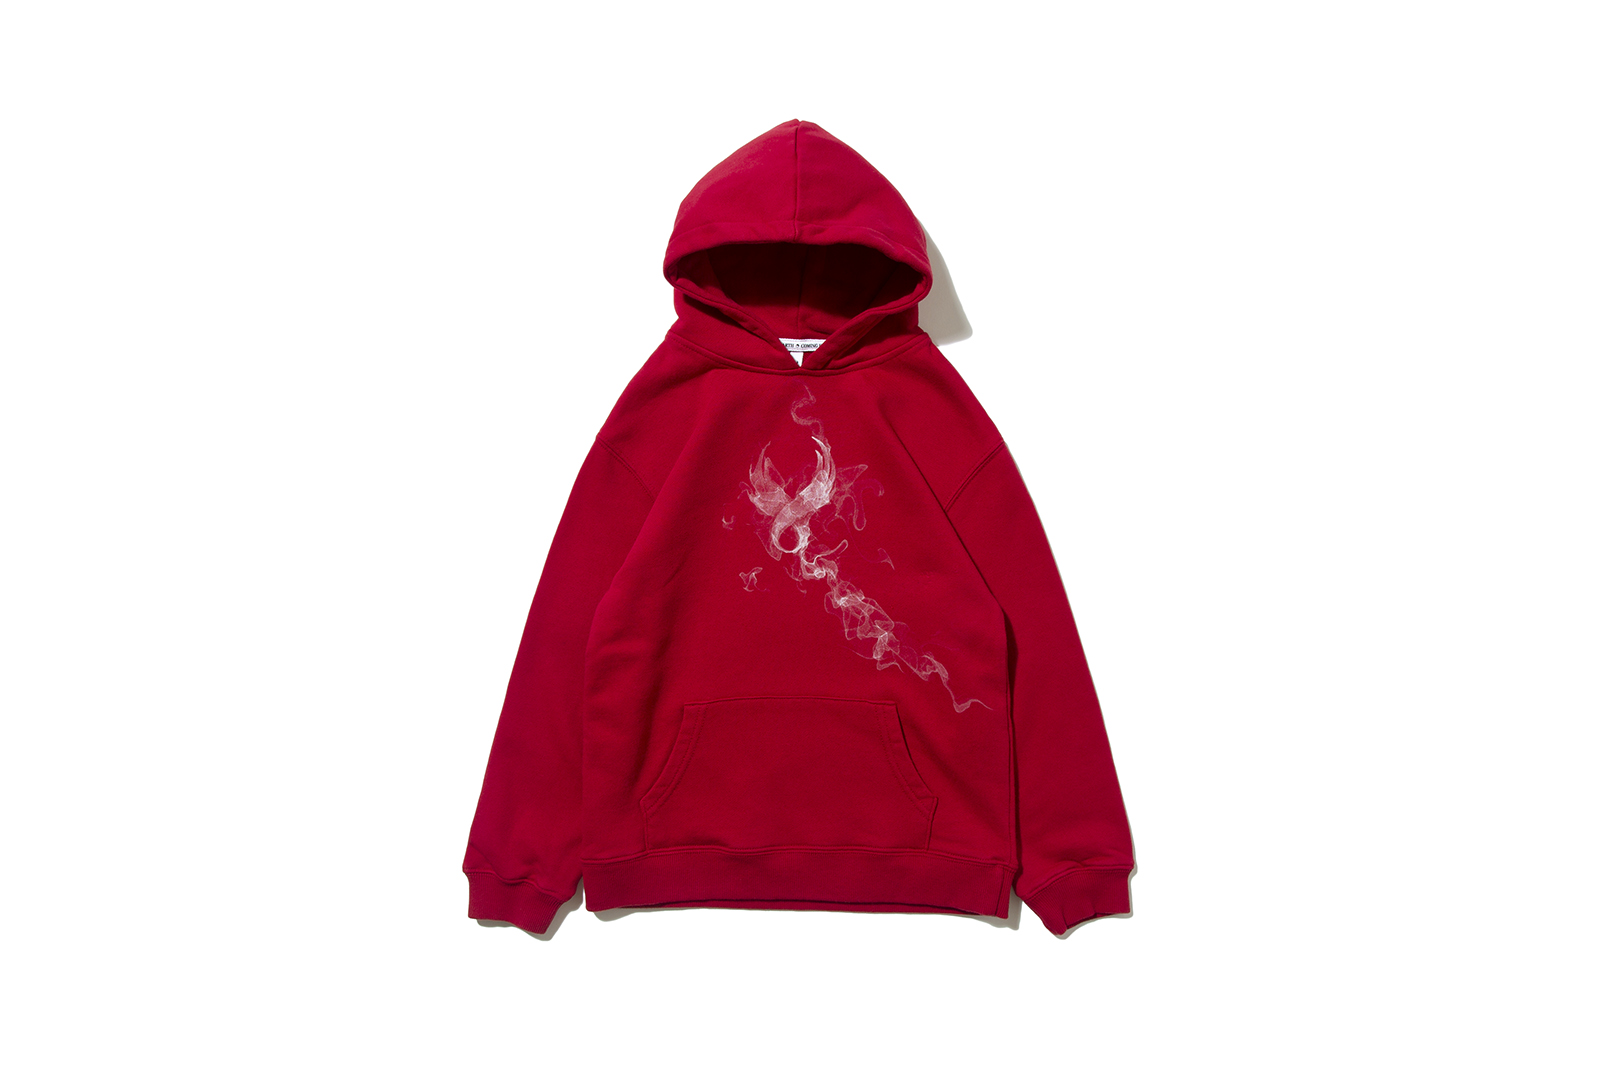 spirit-hoody-ii-kids-red_p2